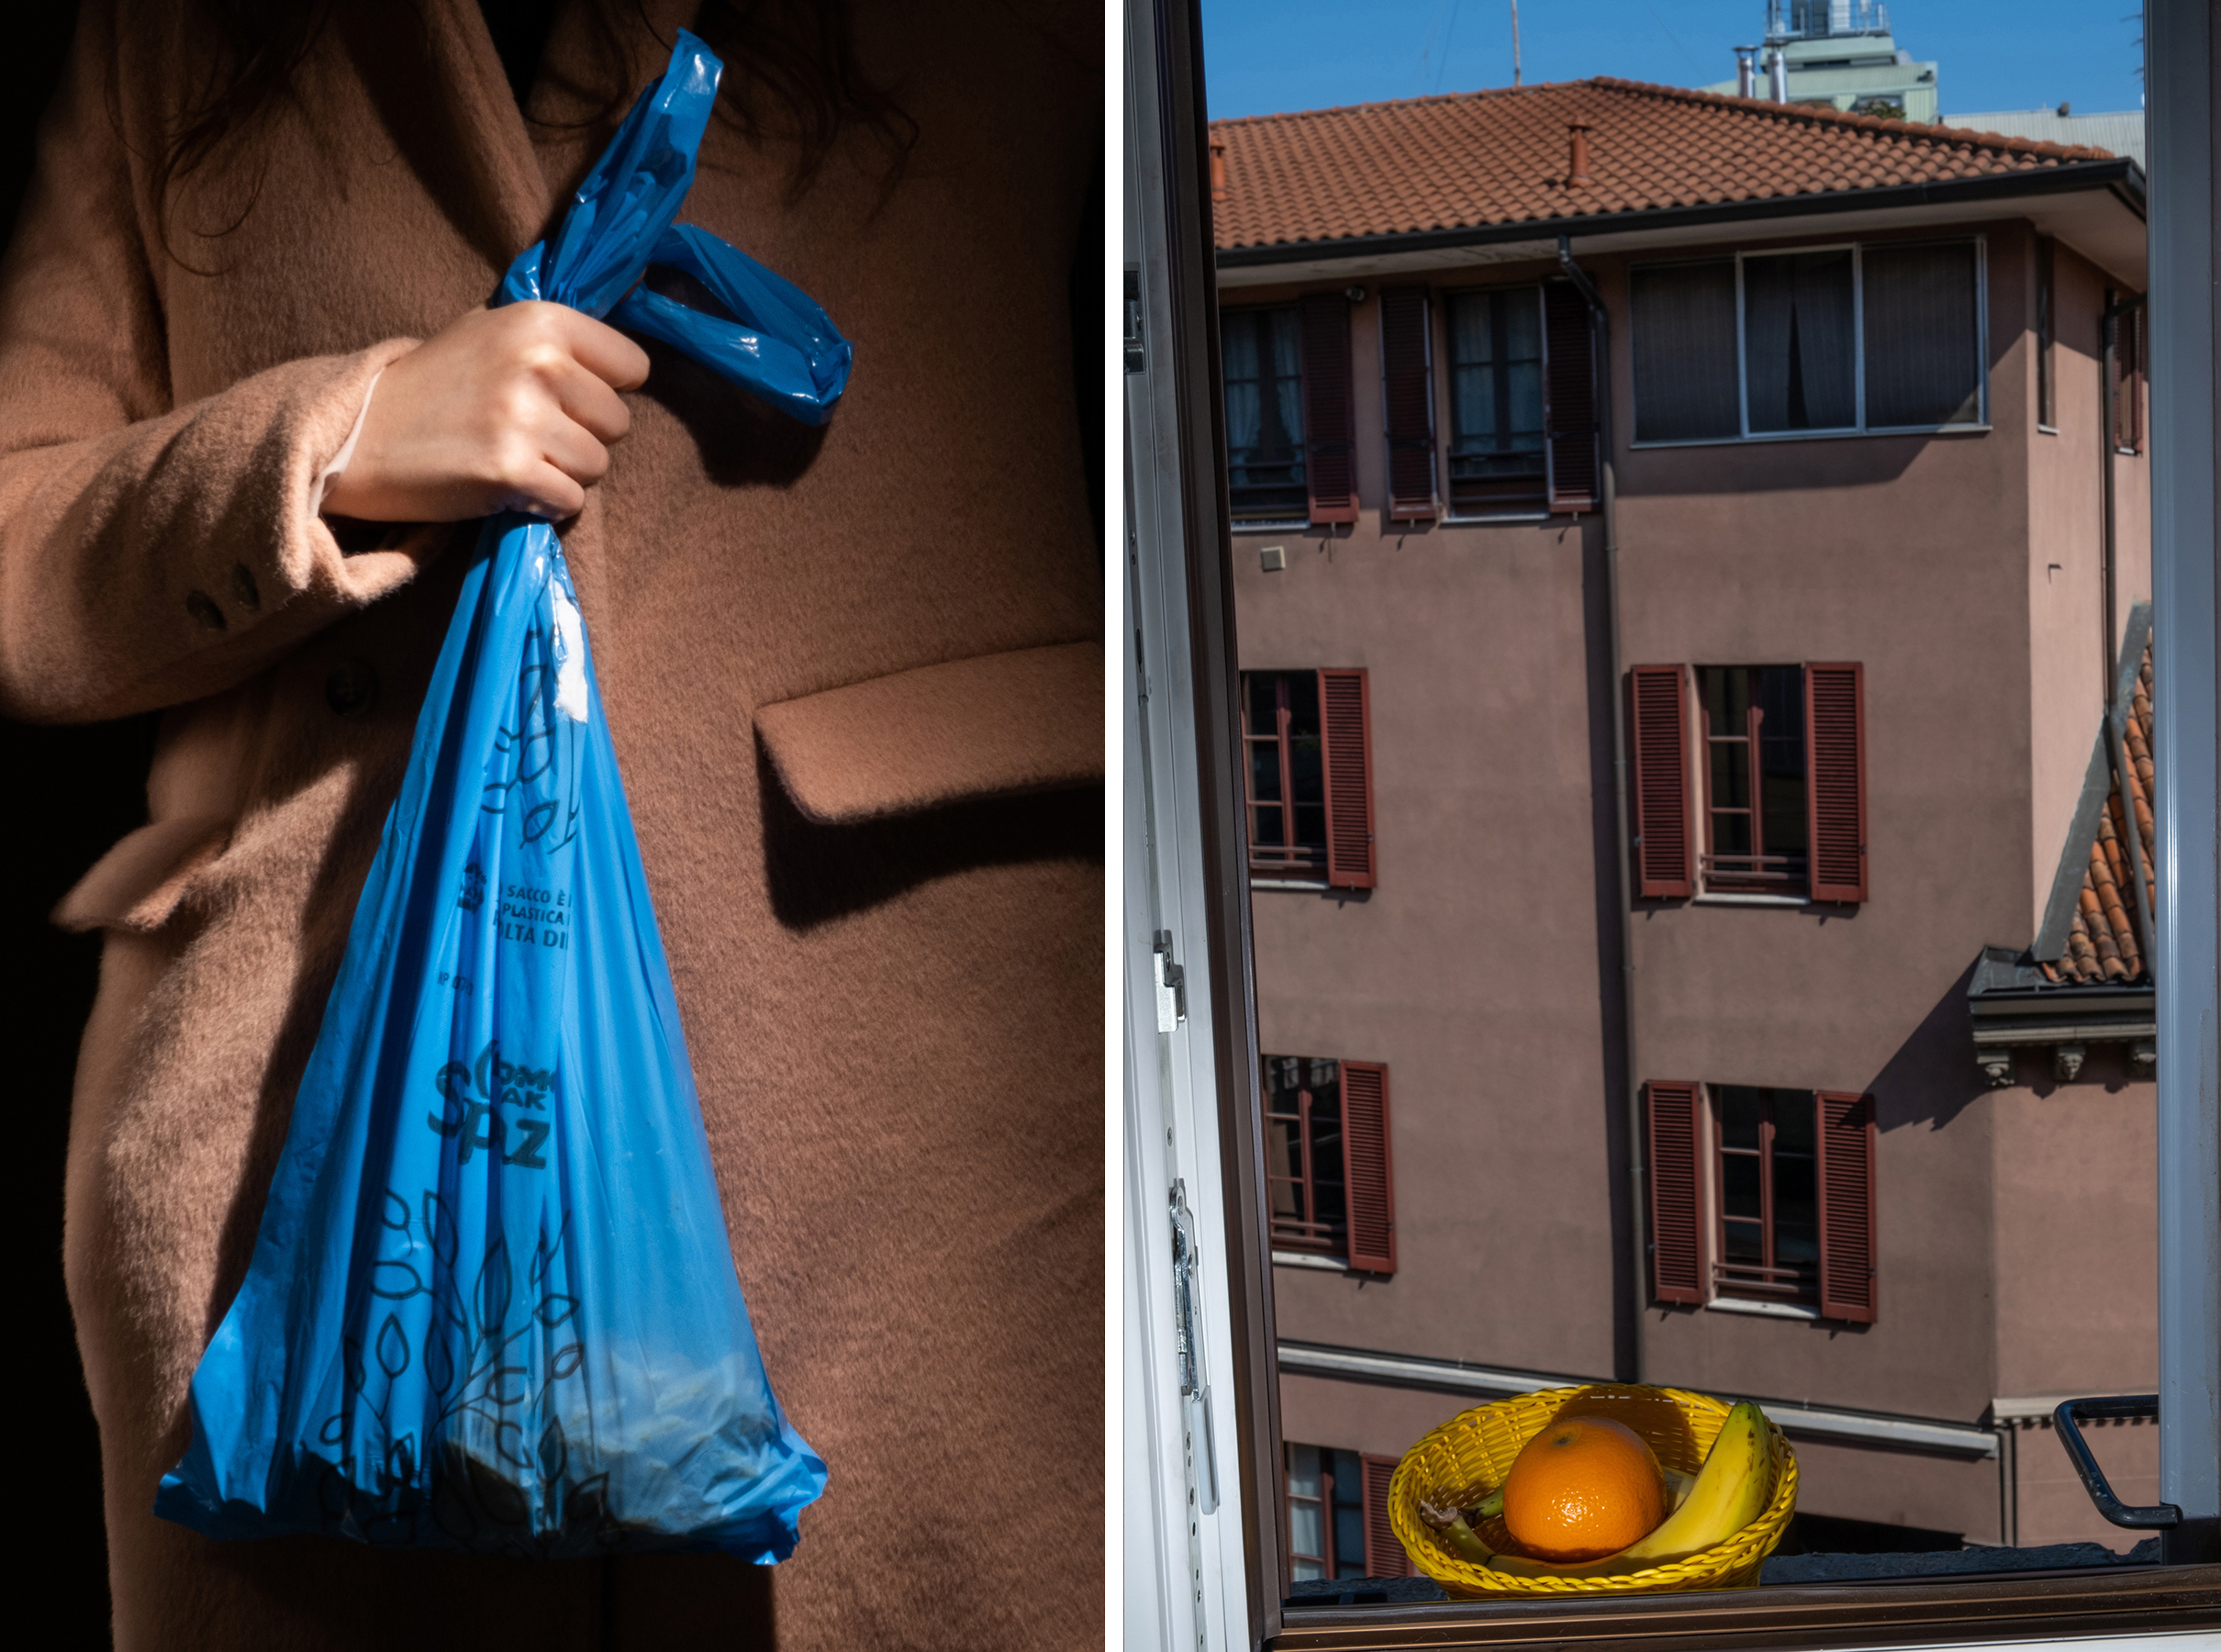 Left: 2:50 P.M. A bag of trash; Right: 12:15 P.M. Fruit on the window